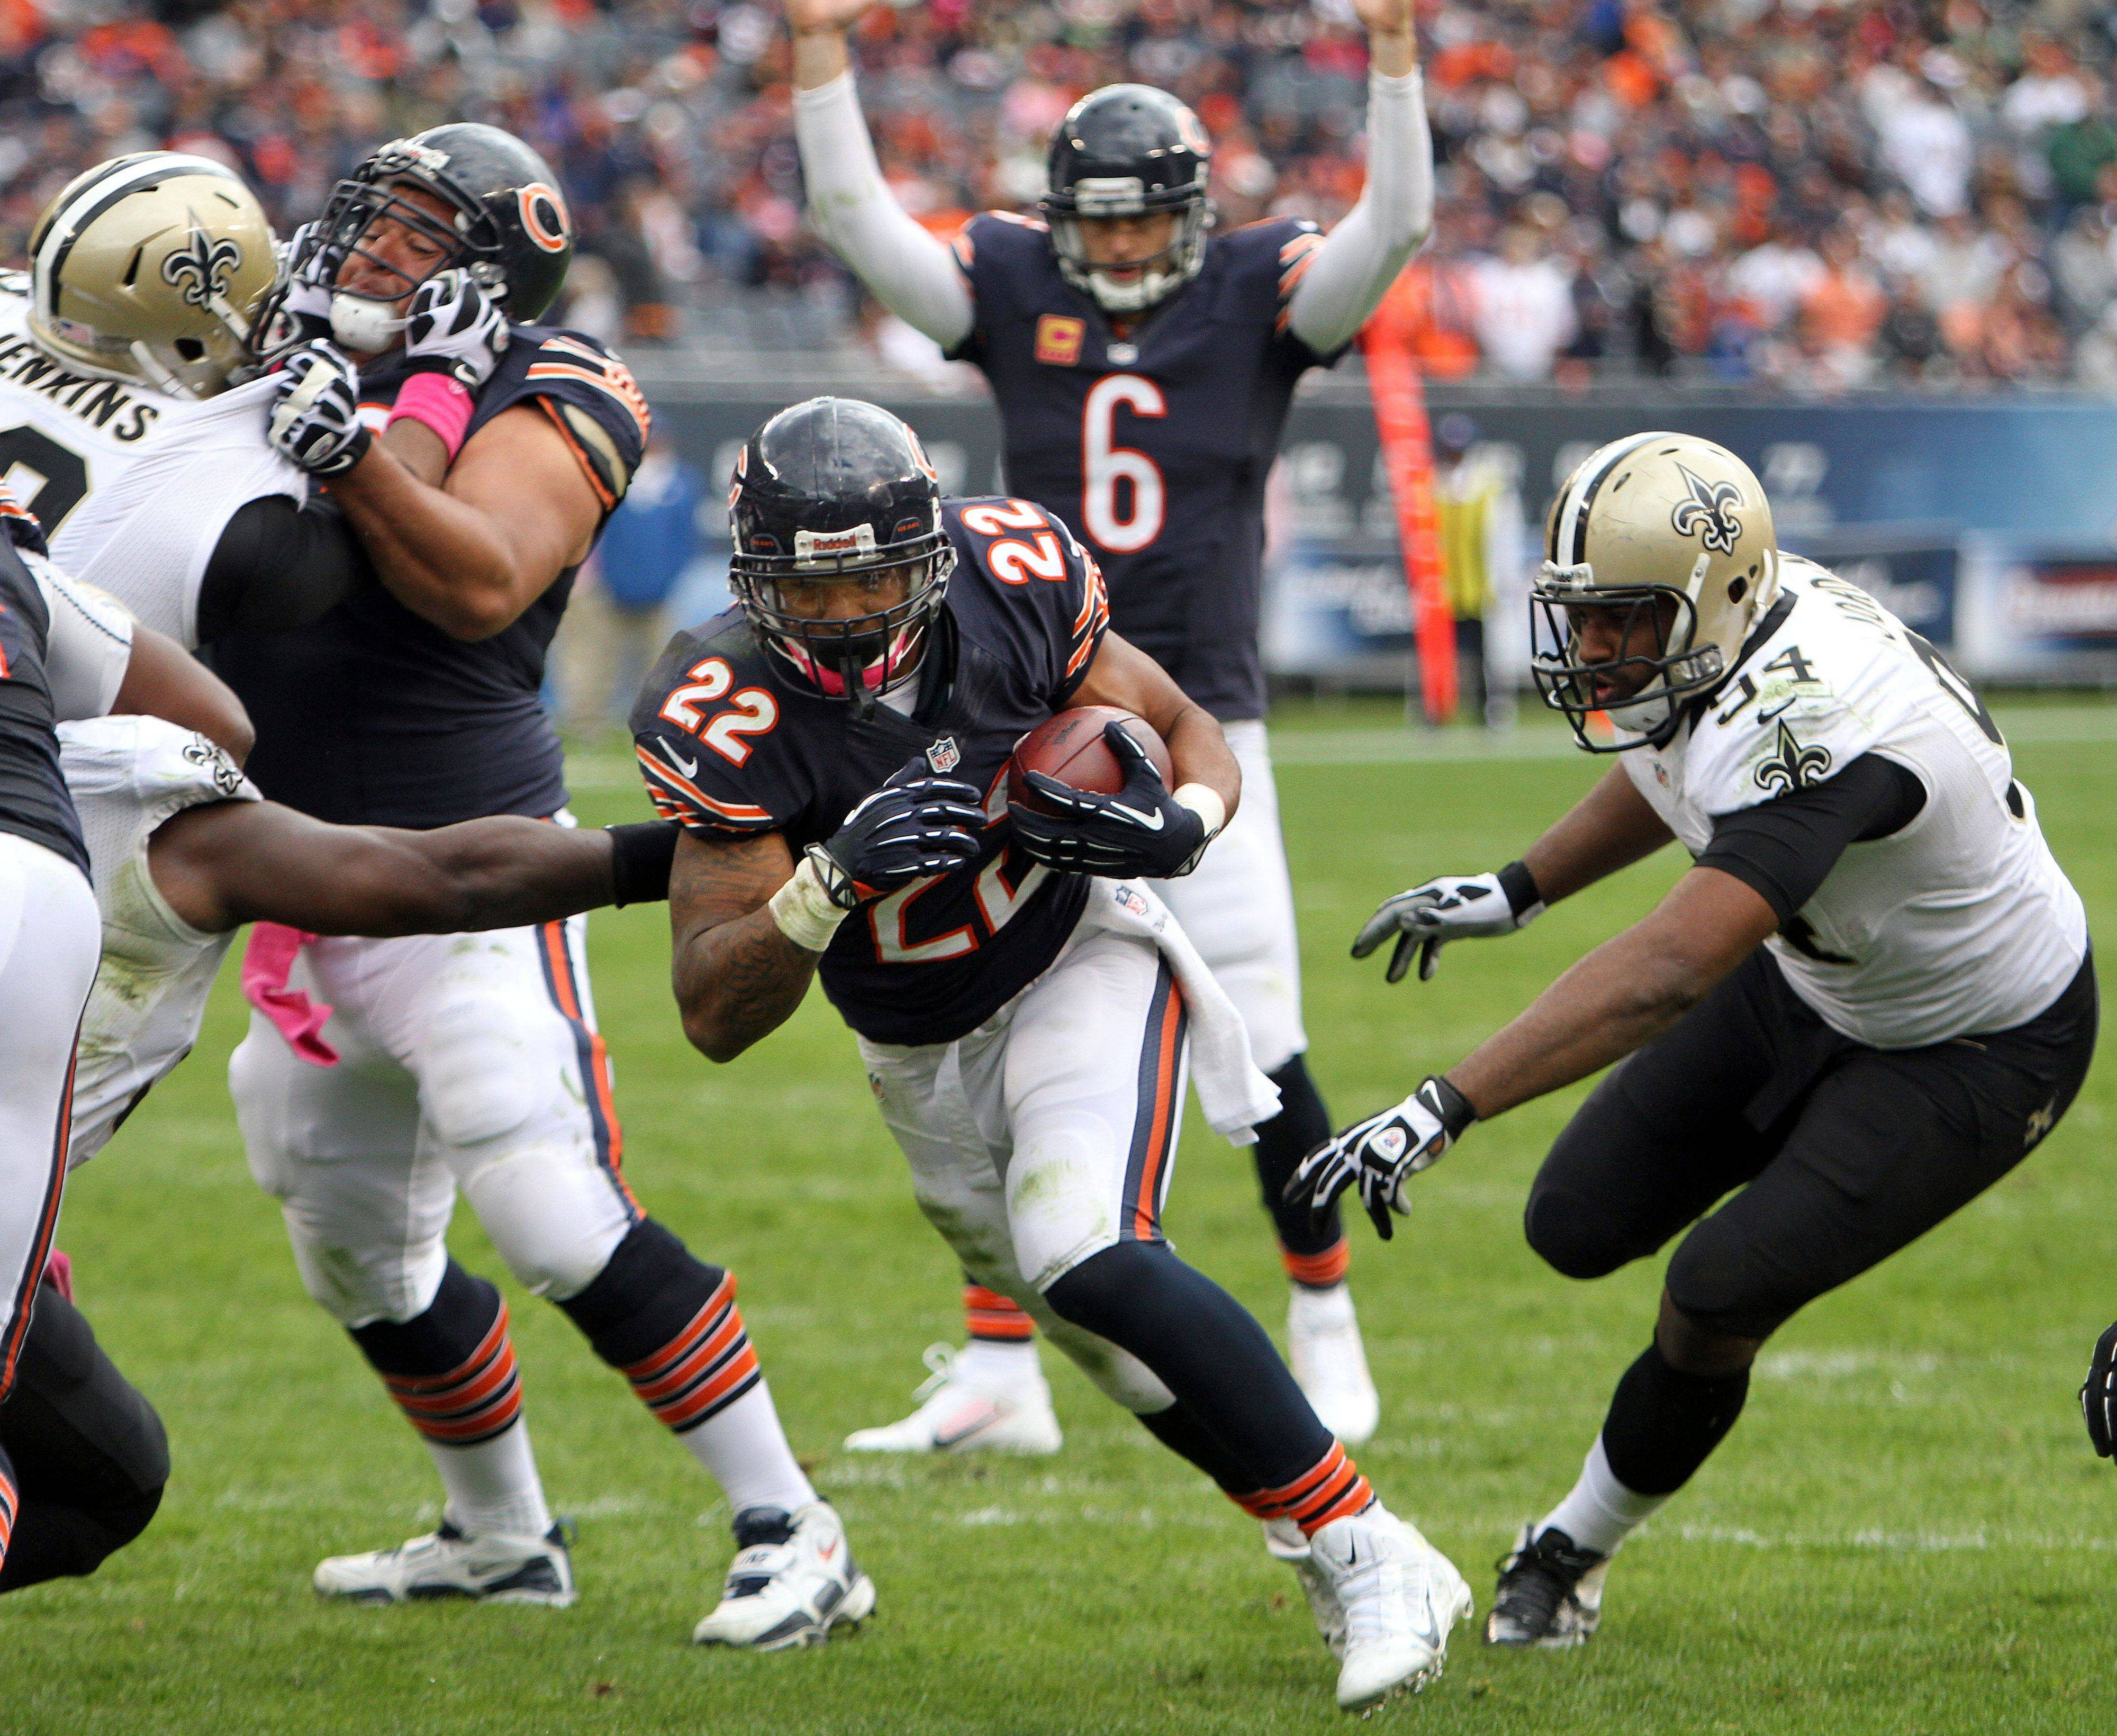 Matt Forte, here scoring a touchdown against the Saints, is on pace for 88 receptions this season. That's twice as many catches as he had in 2012.